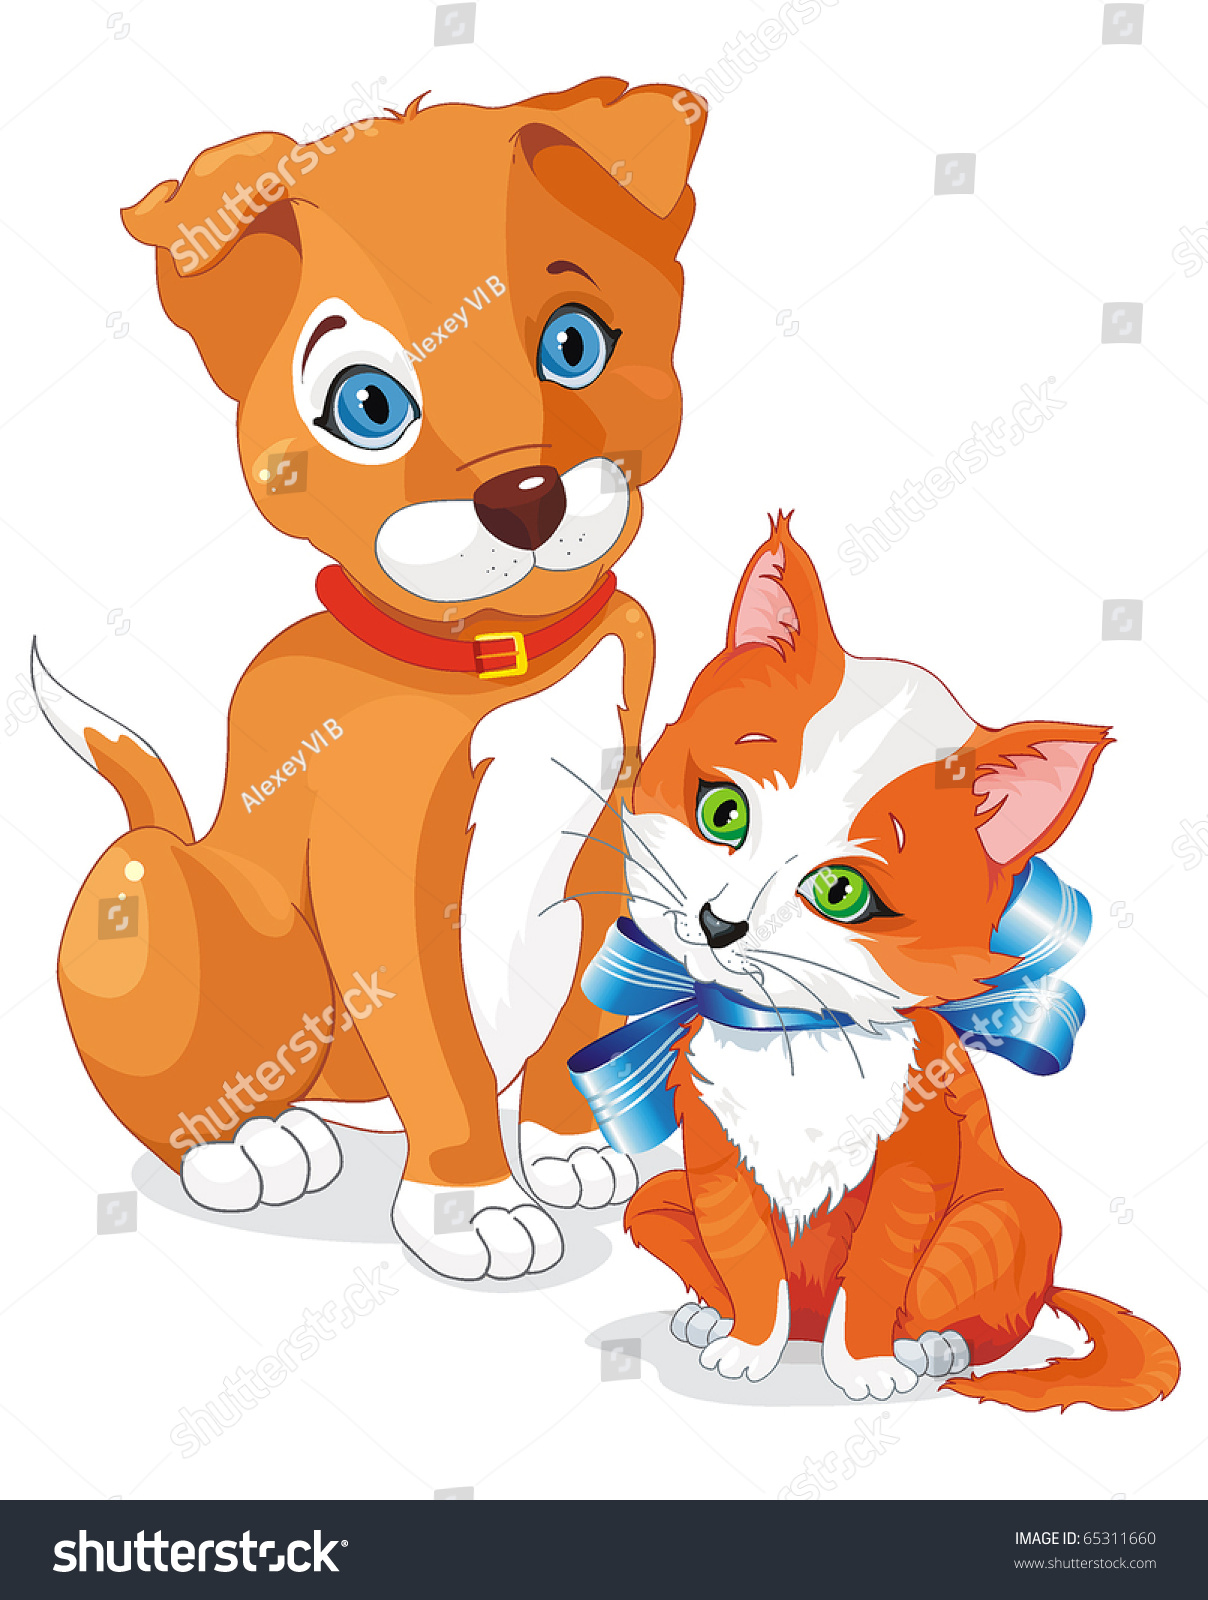 Cute Cartoon Dog Cat Puppy Kitten Stock Vector 65311660 - Shutterstock